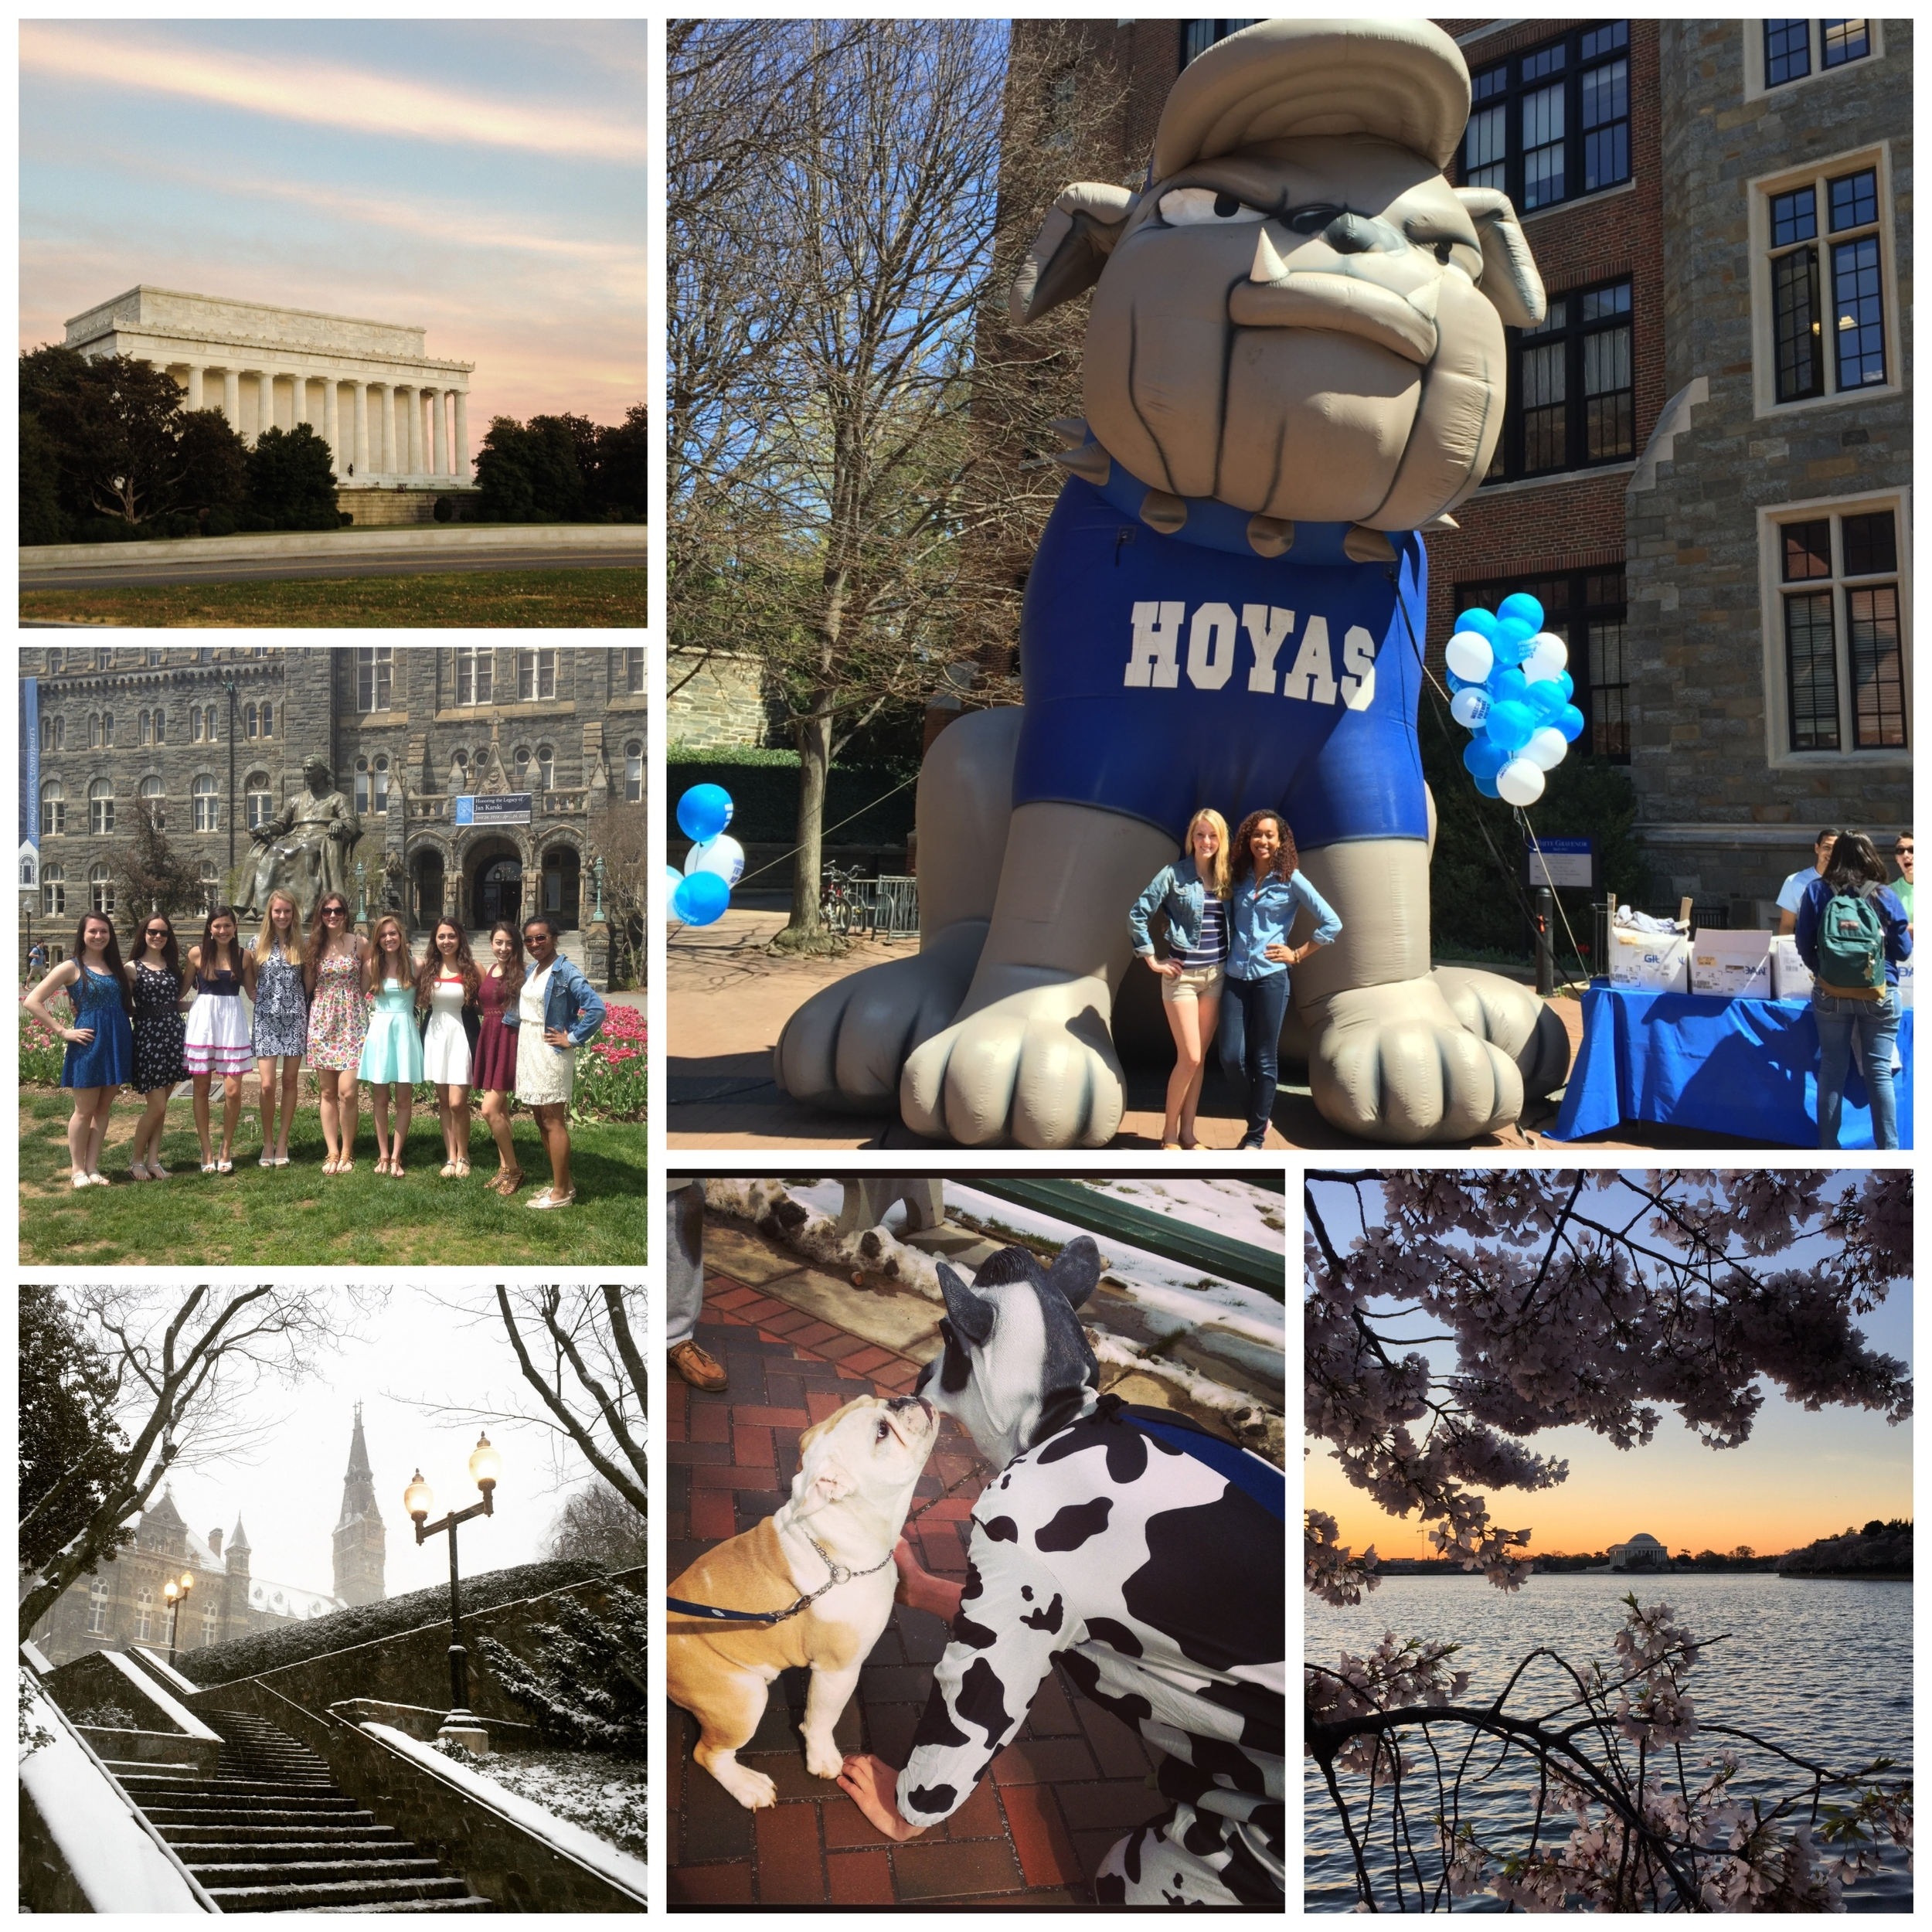 A collage of photos of campus, Jack the bulldog, the tidal basin, students grouped together on the lawn, the Lincoln monument